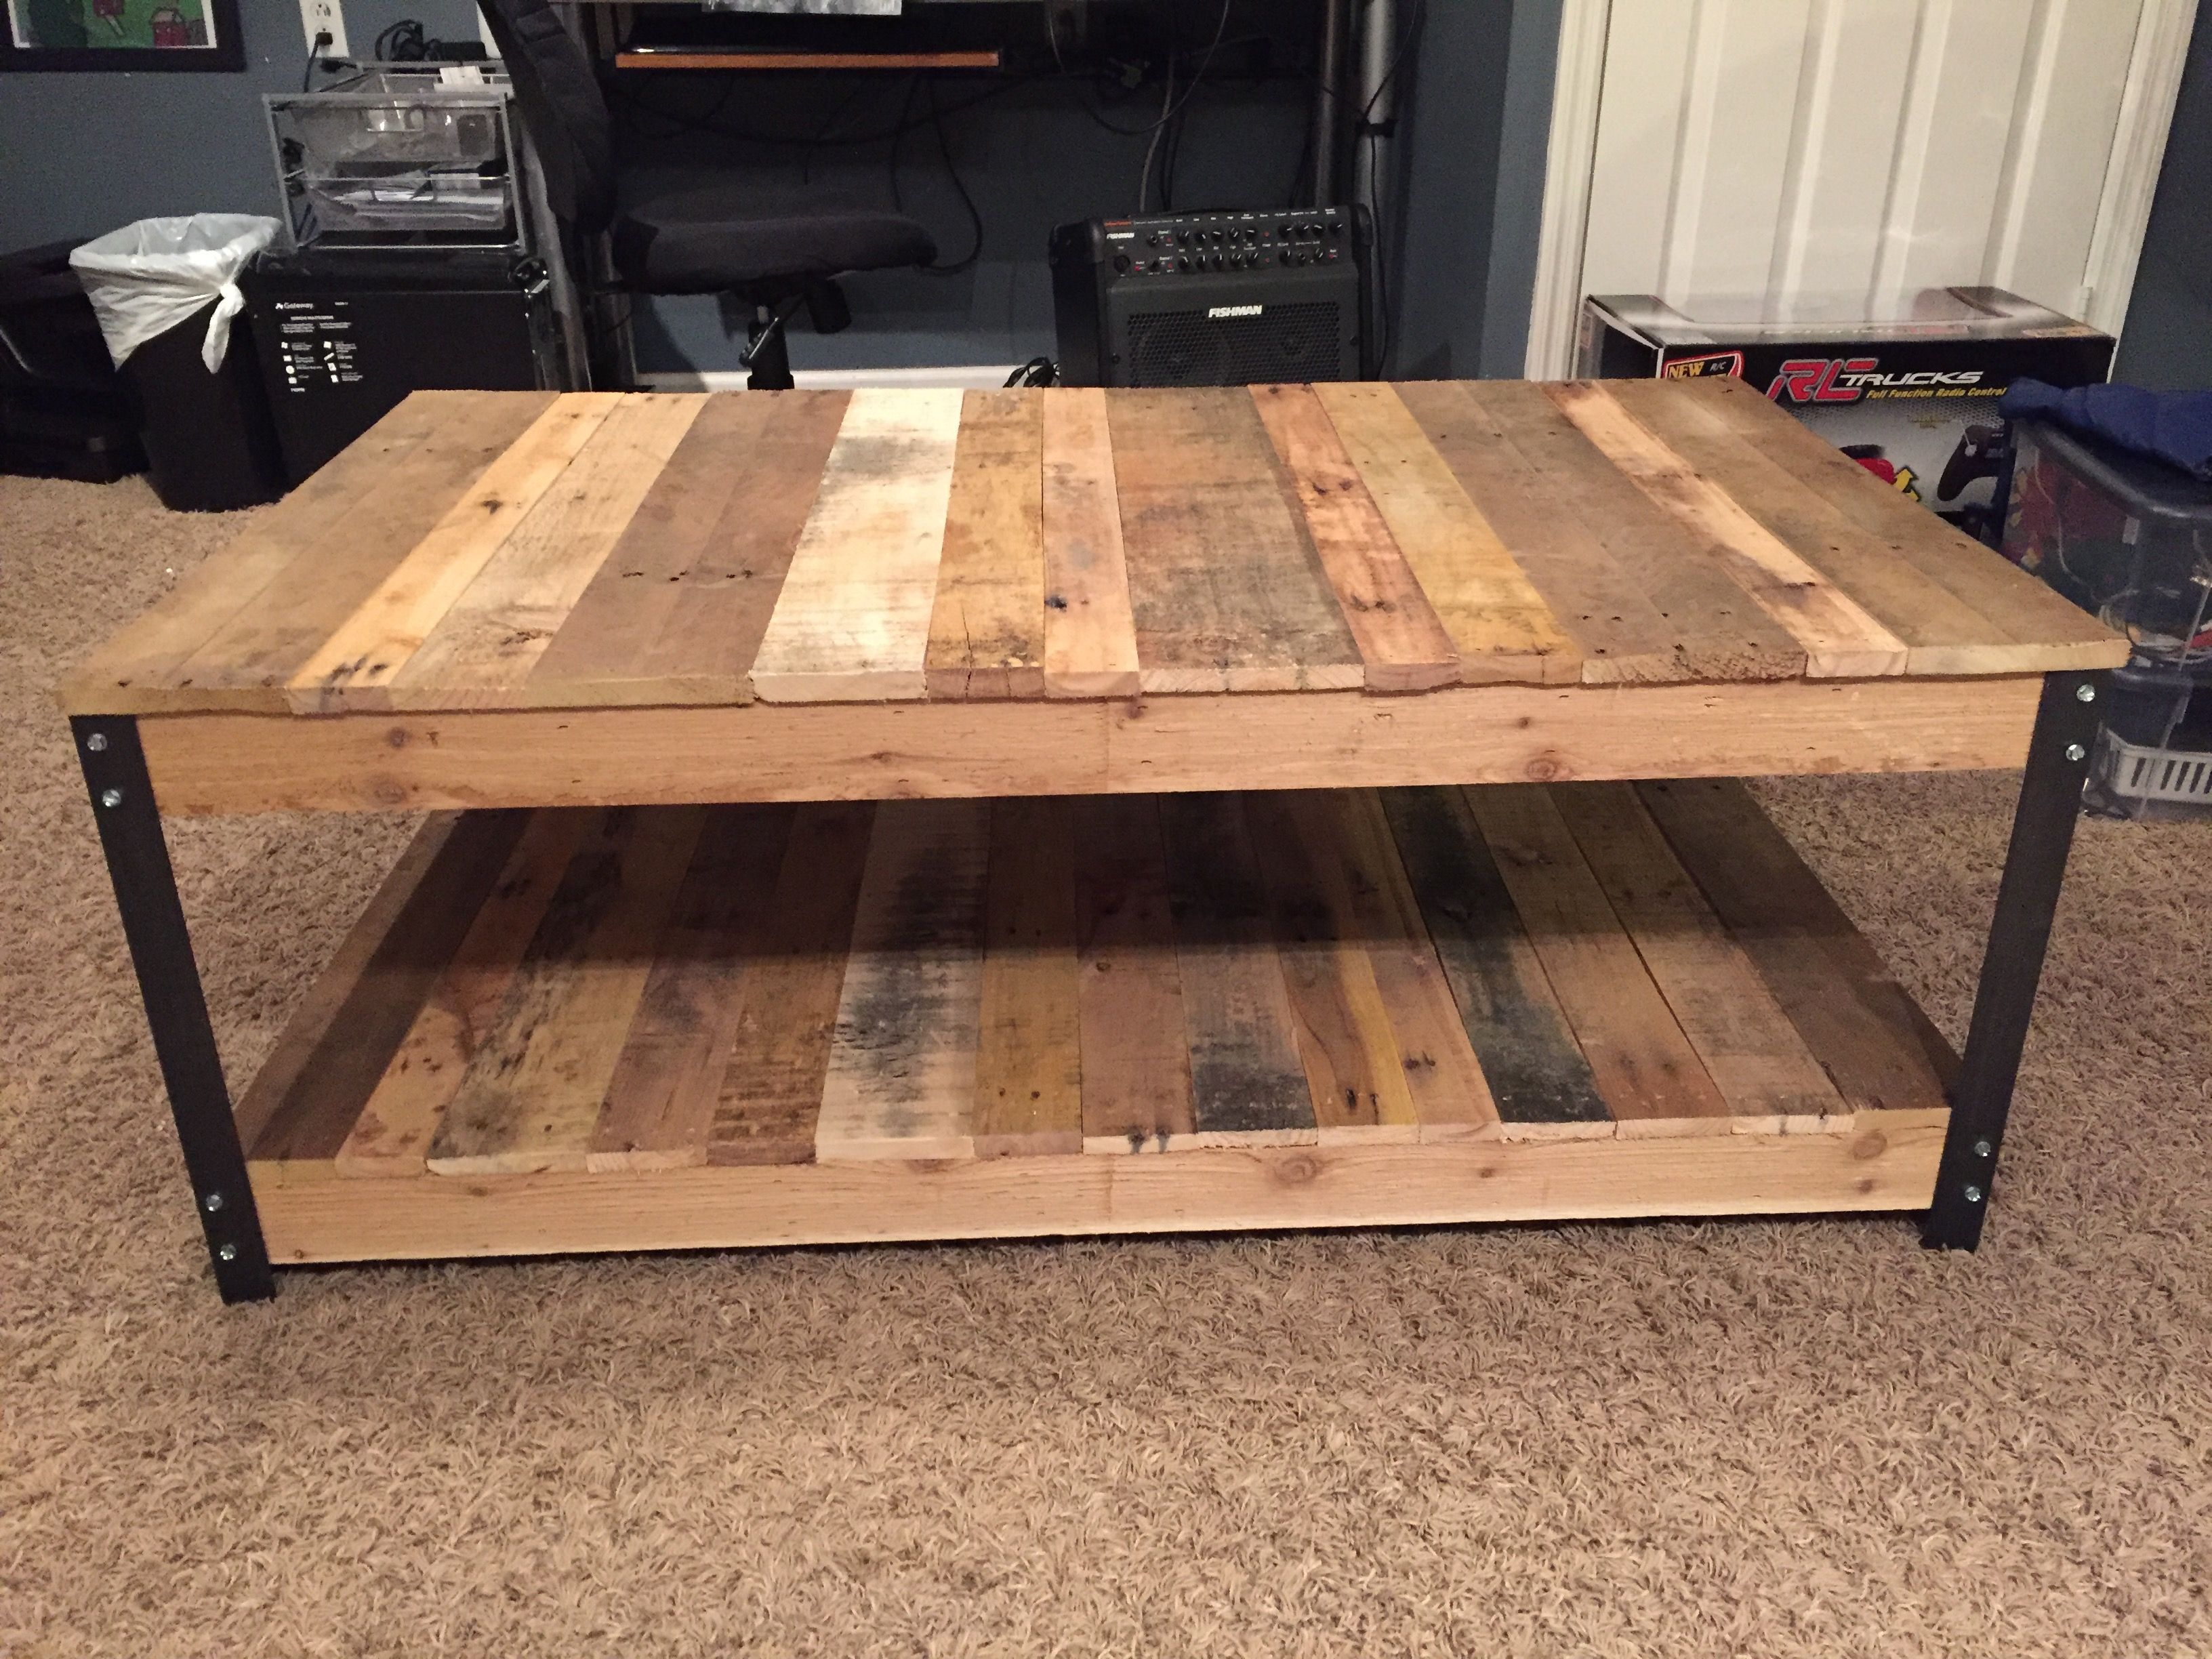 Diy Coffee Table Made From Pallet Wood And Angle Iron Coffee